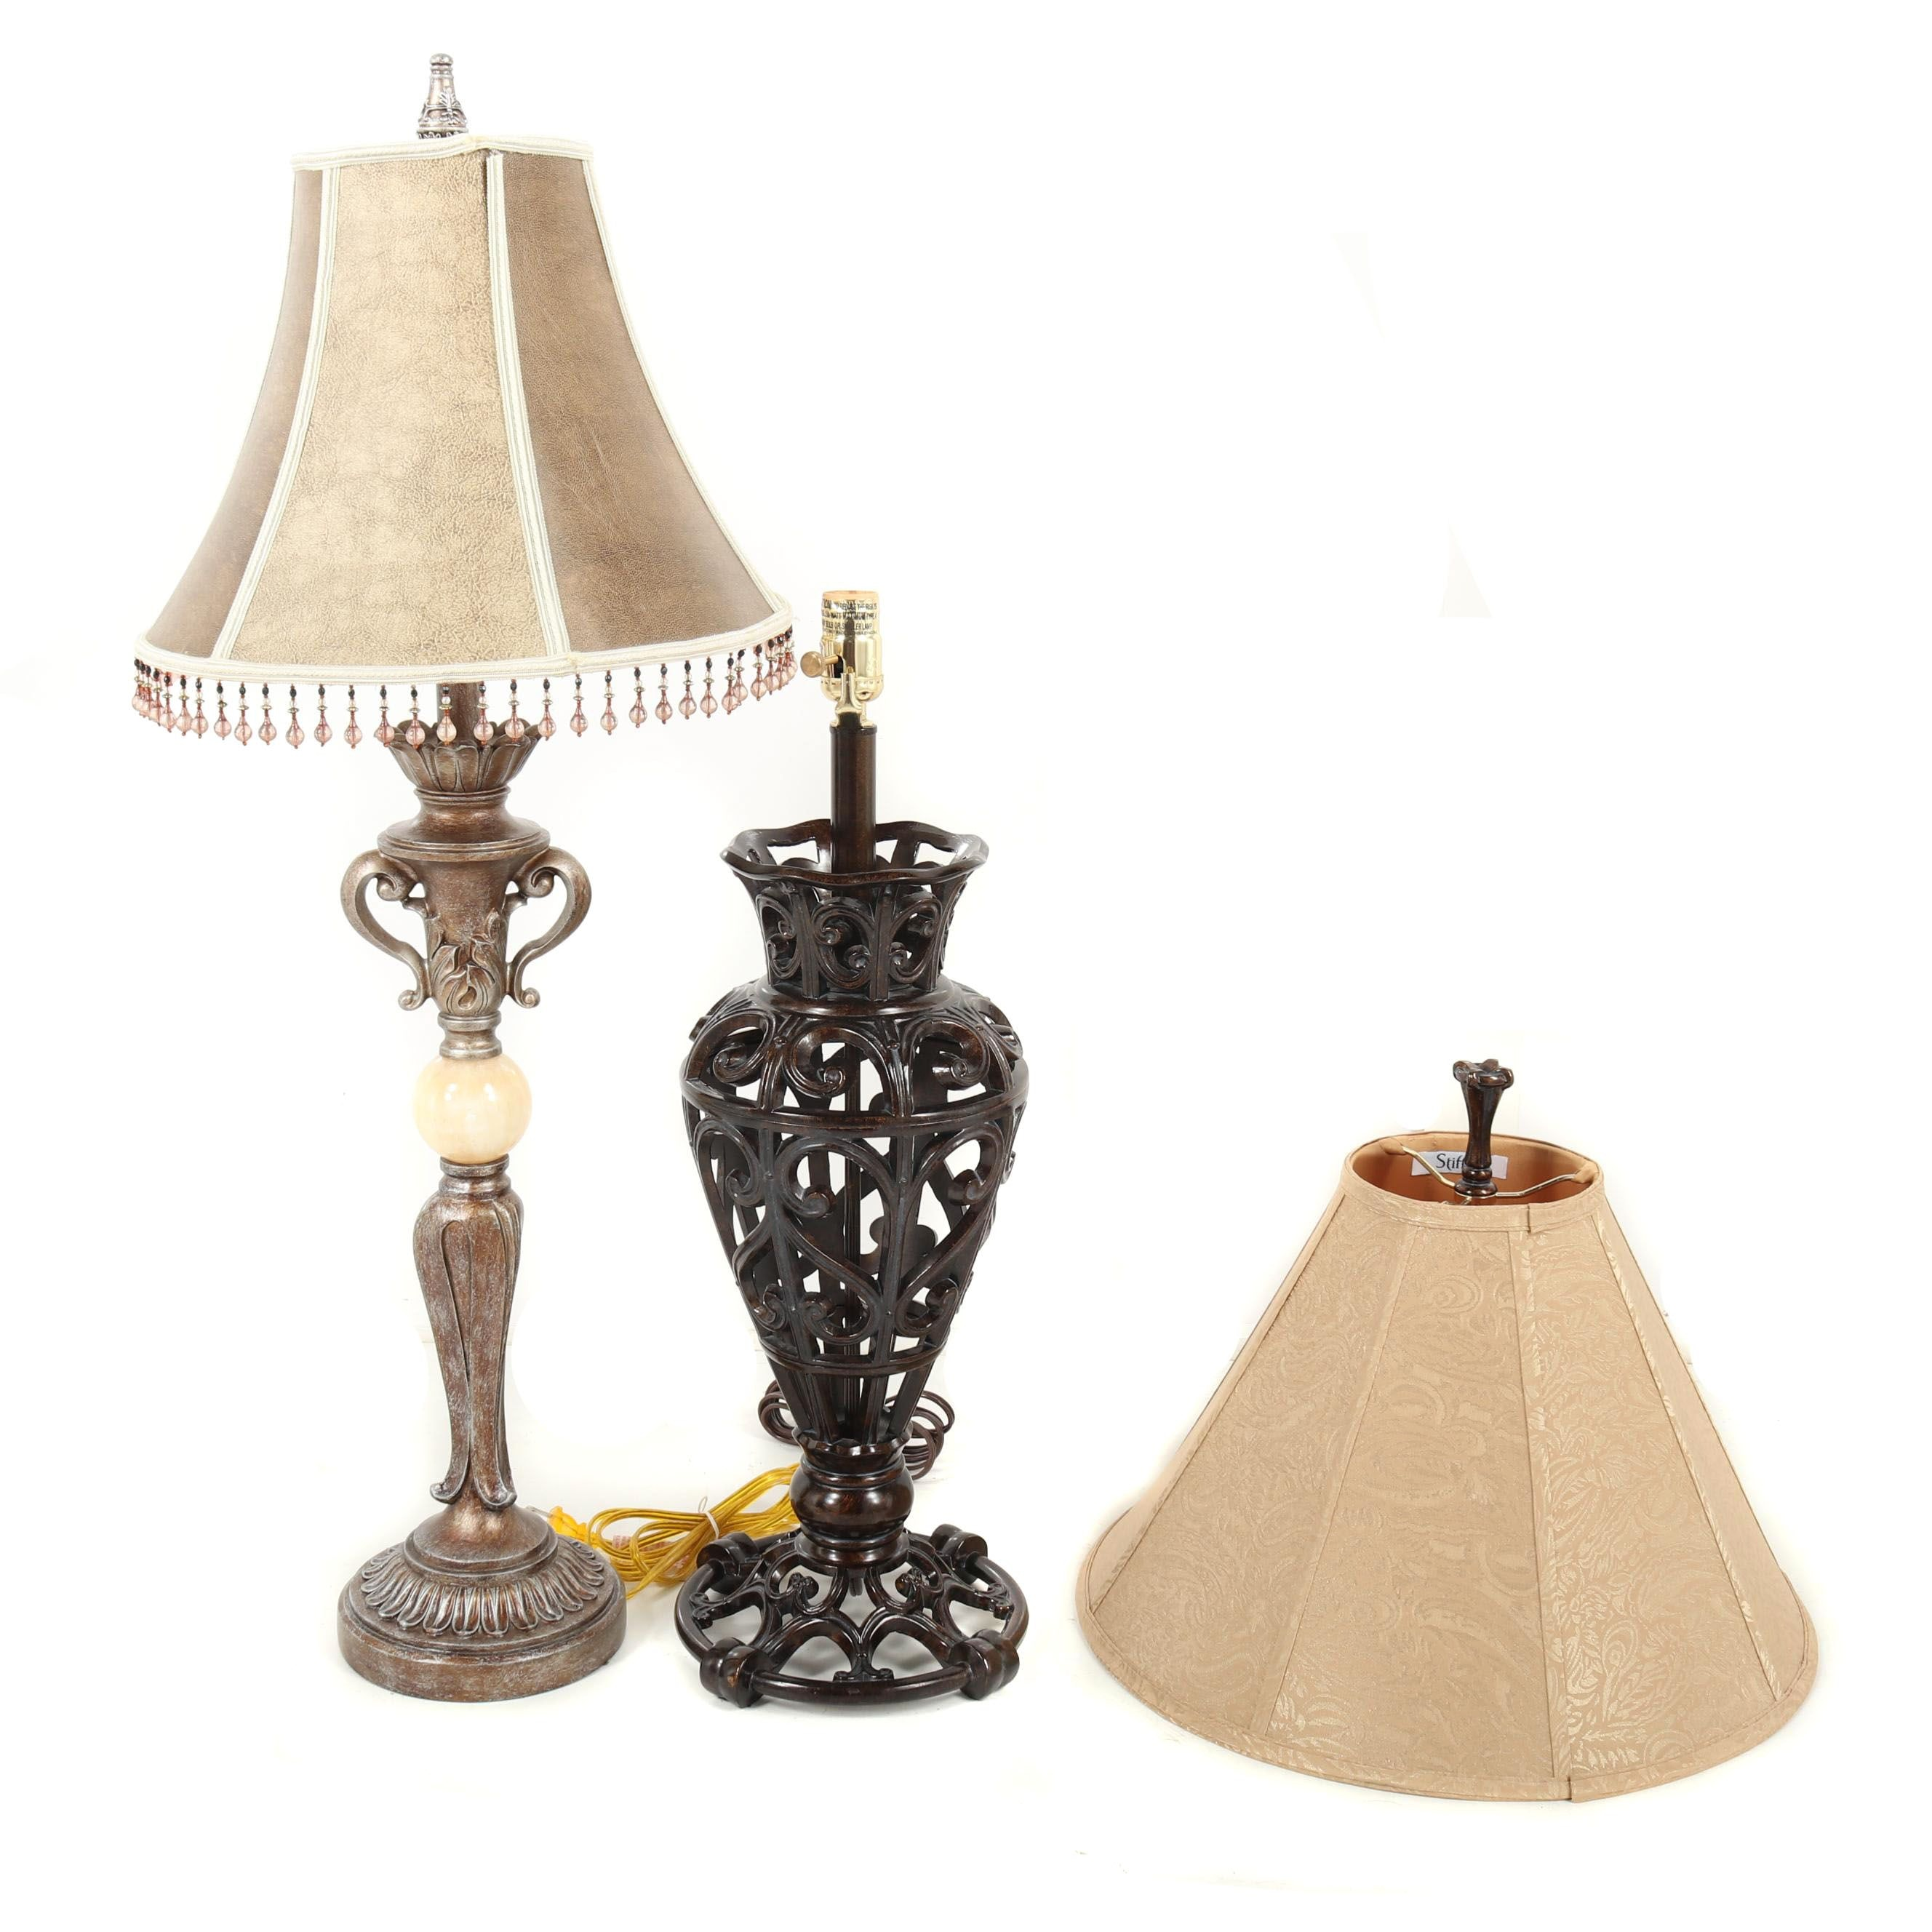 Contemporary Metal, Stone and Resin Table Lamps with Stiffel Shade